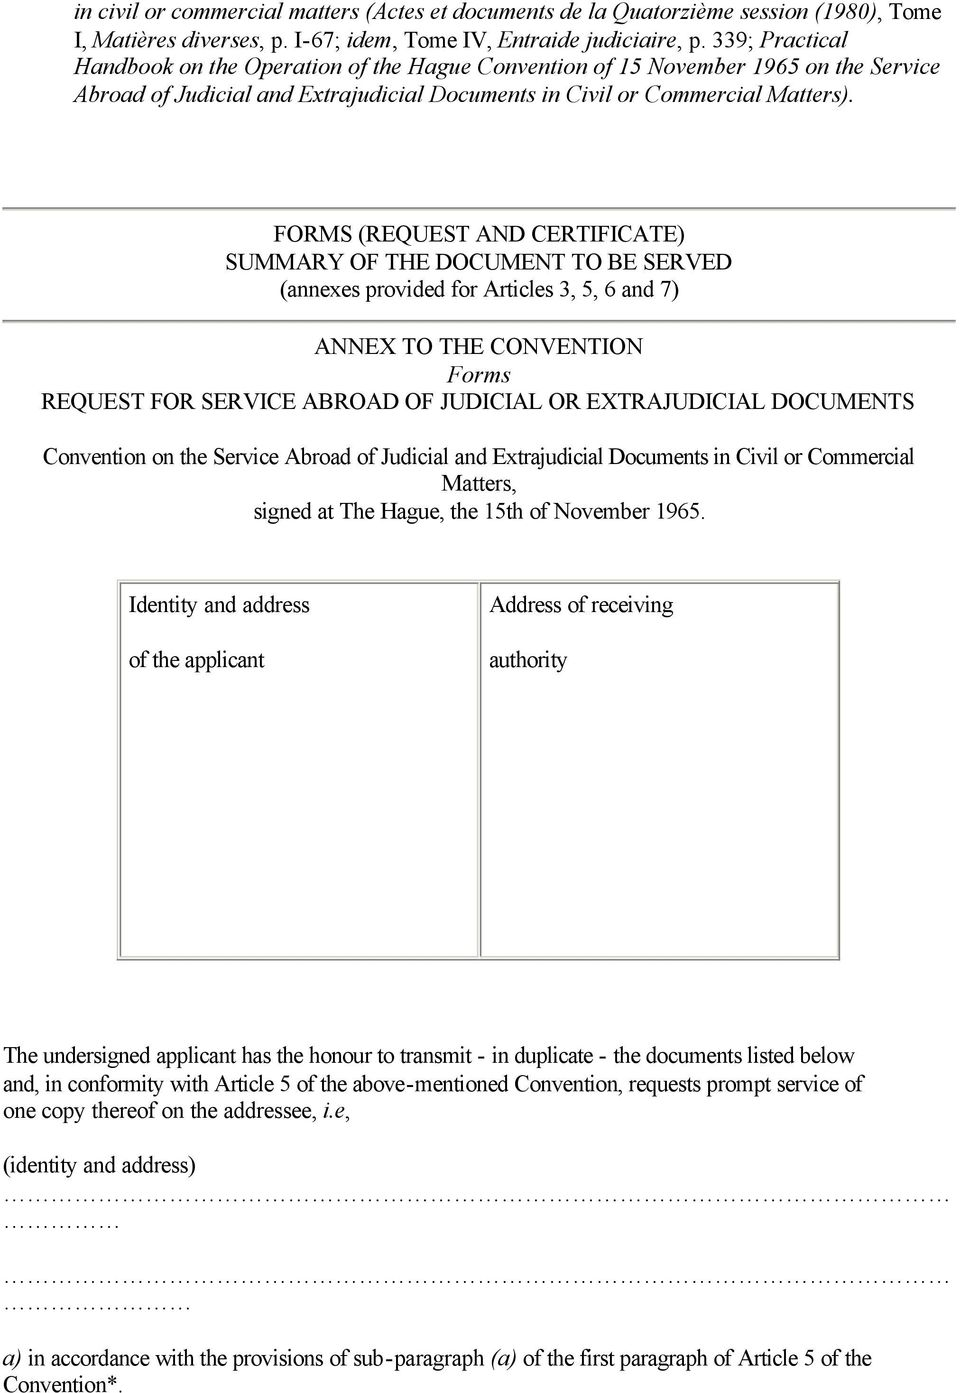 FORMS (REQUEST AND CERTIFICATE) SUMMARY OF THE DOCUMENT TO BE SERVED (annexes provided for Articles 3, 5, 6 and 7) ANNEX TO THE CONVENTION Forms REQUEST FOR SERVICE ABROAD OF JUDICIAL OR